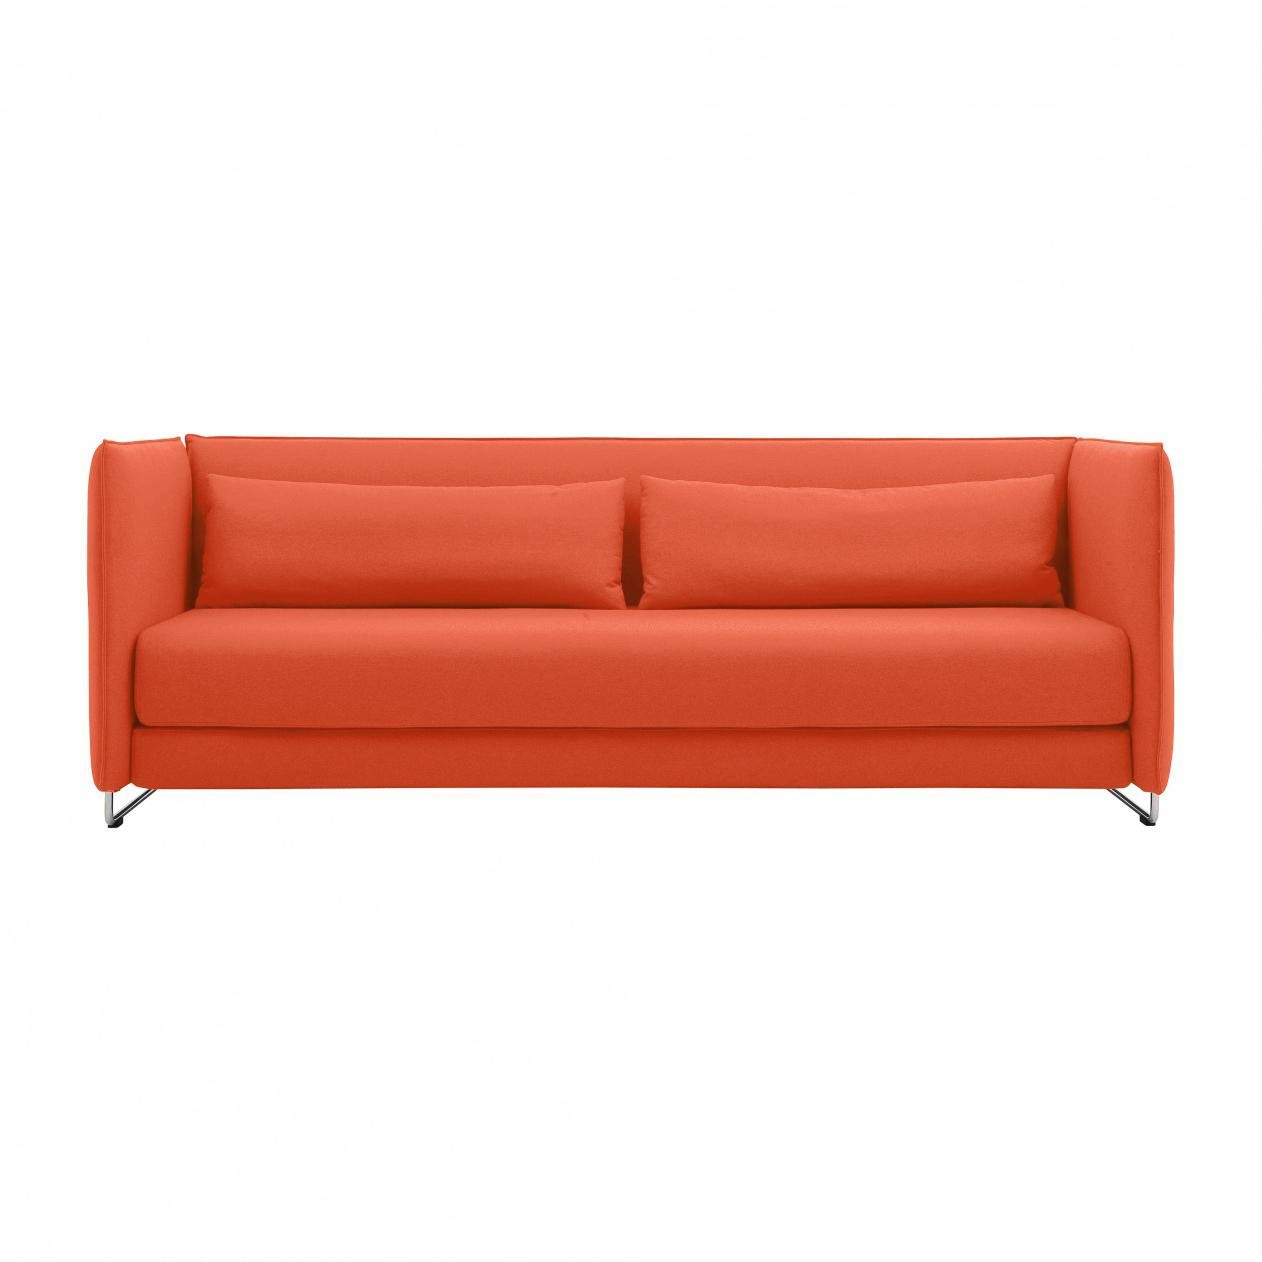 Softline Schlafsofa Metro Sofa Bed